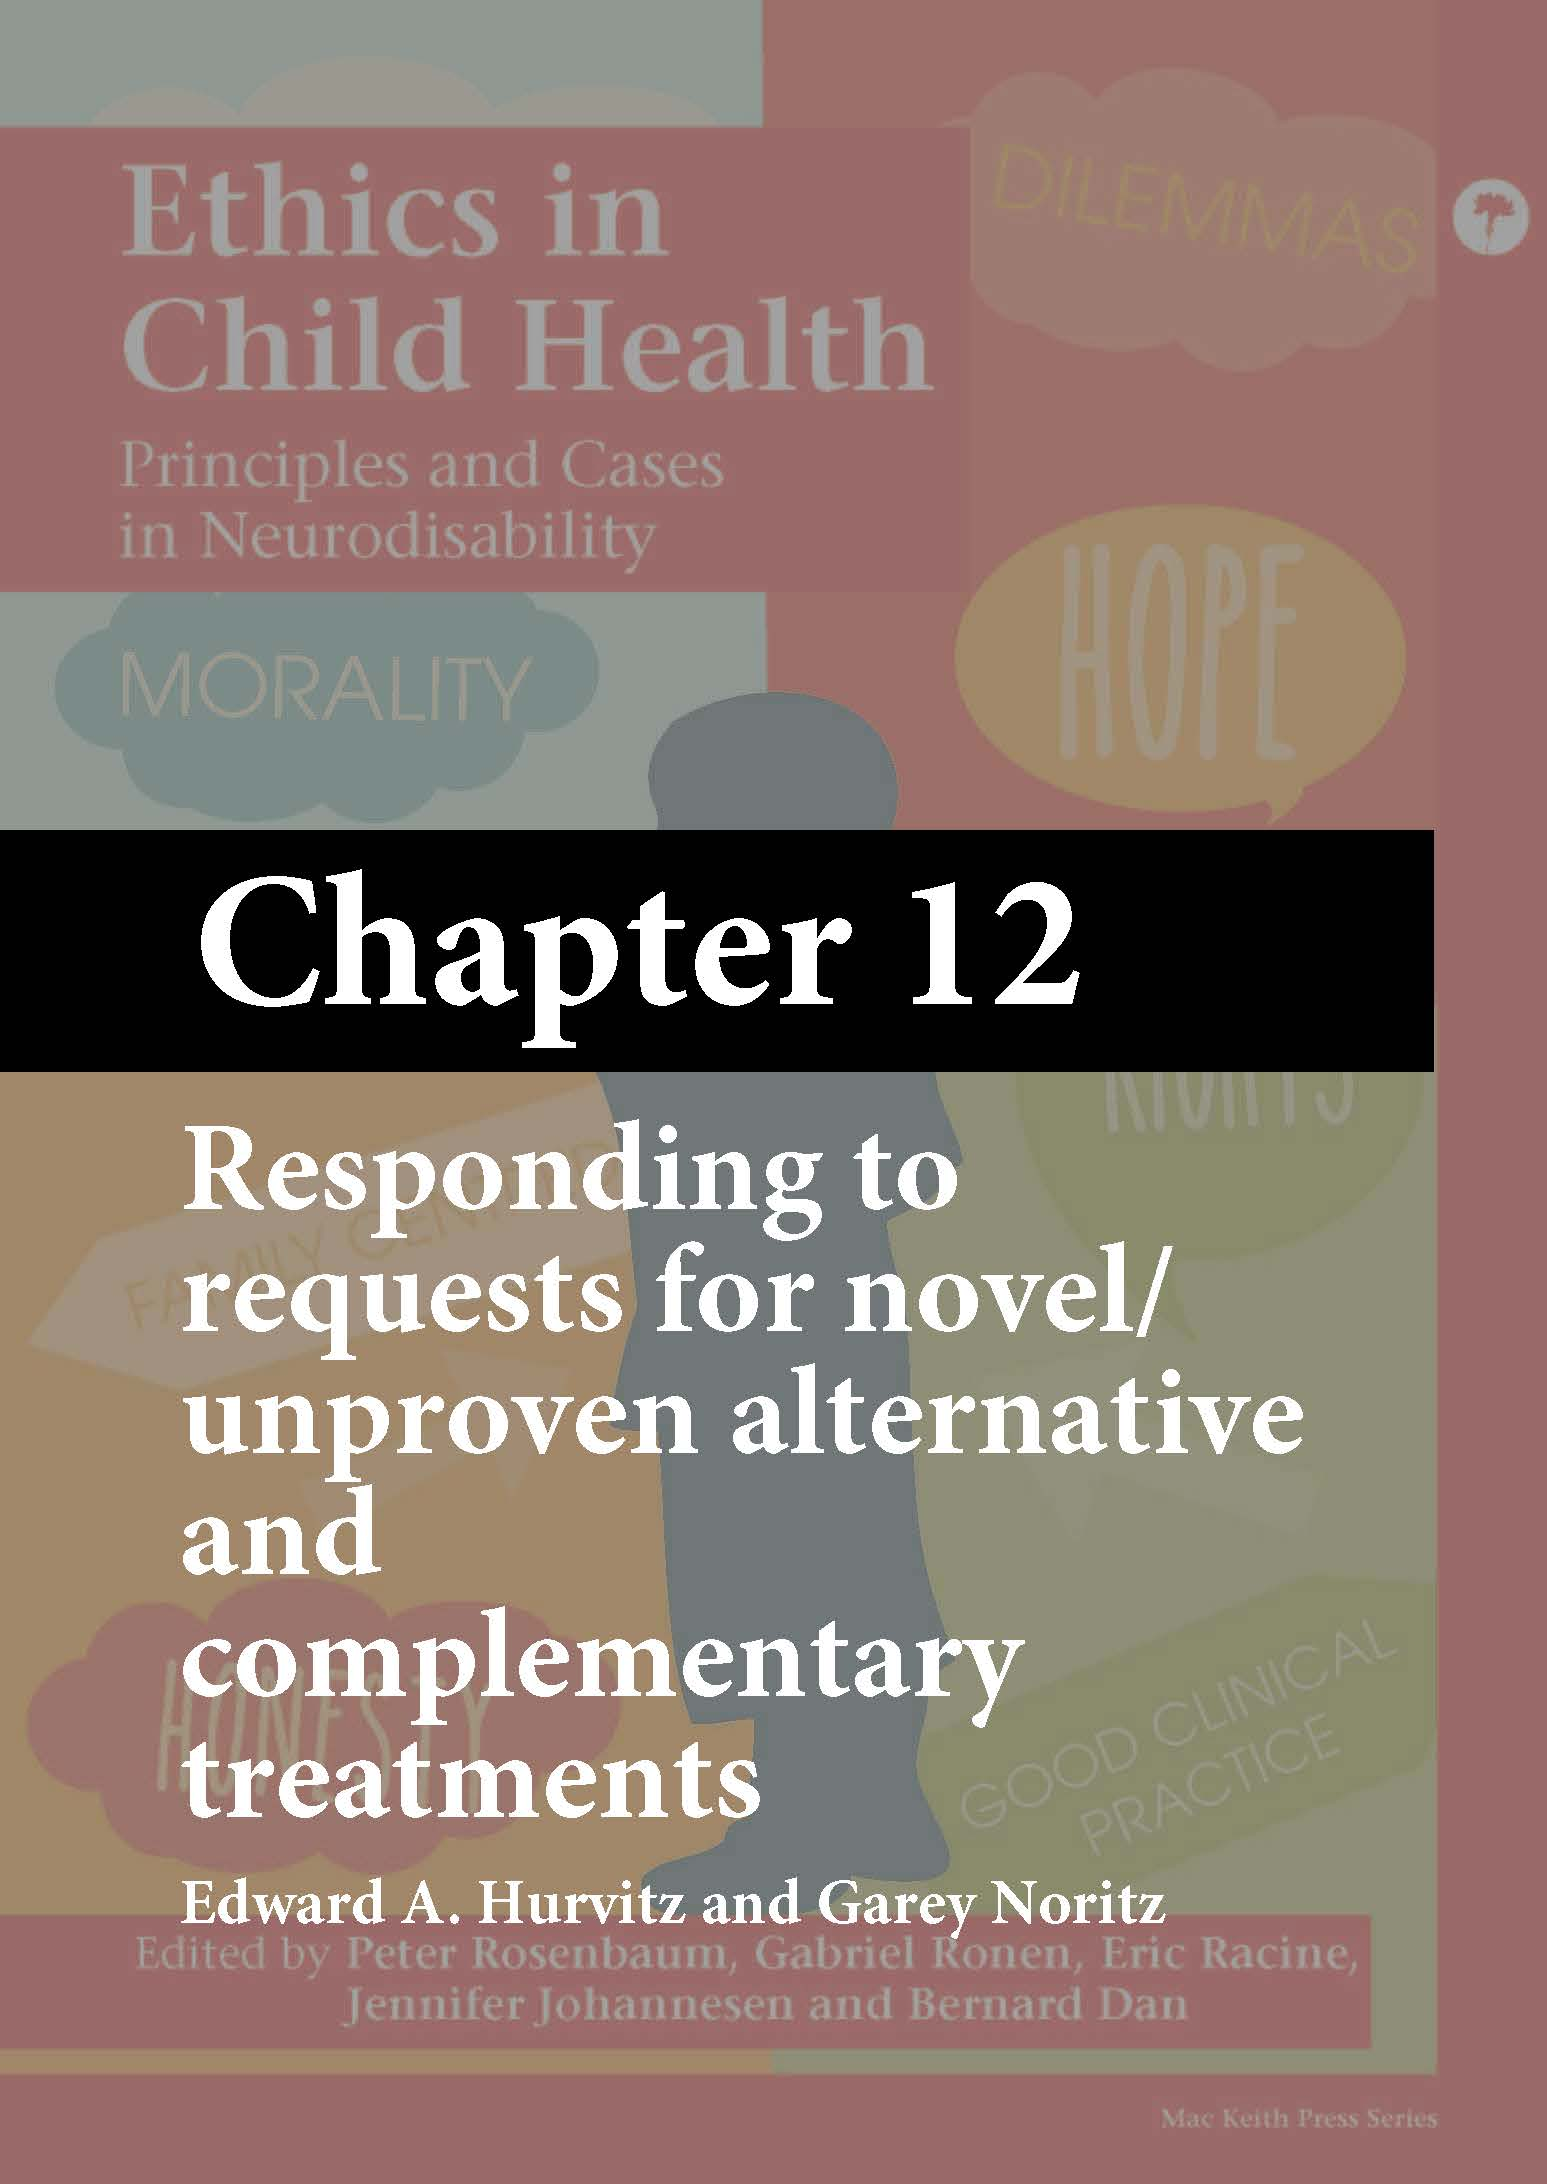 Ethics in Child Health, Rosenbaum, Chapter 12 cover